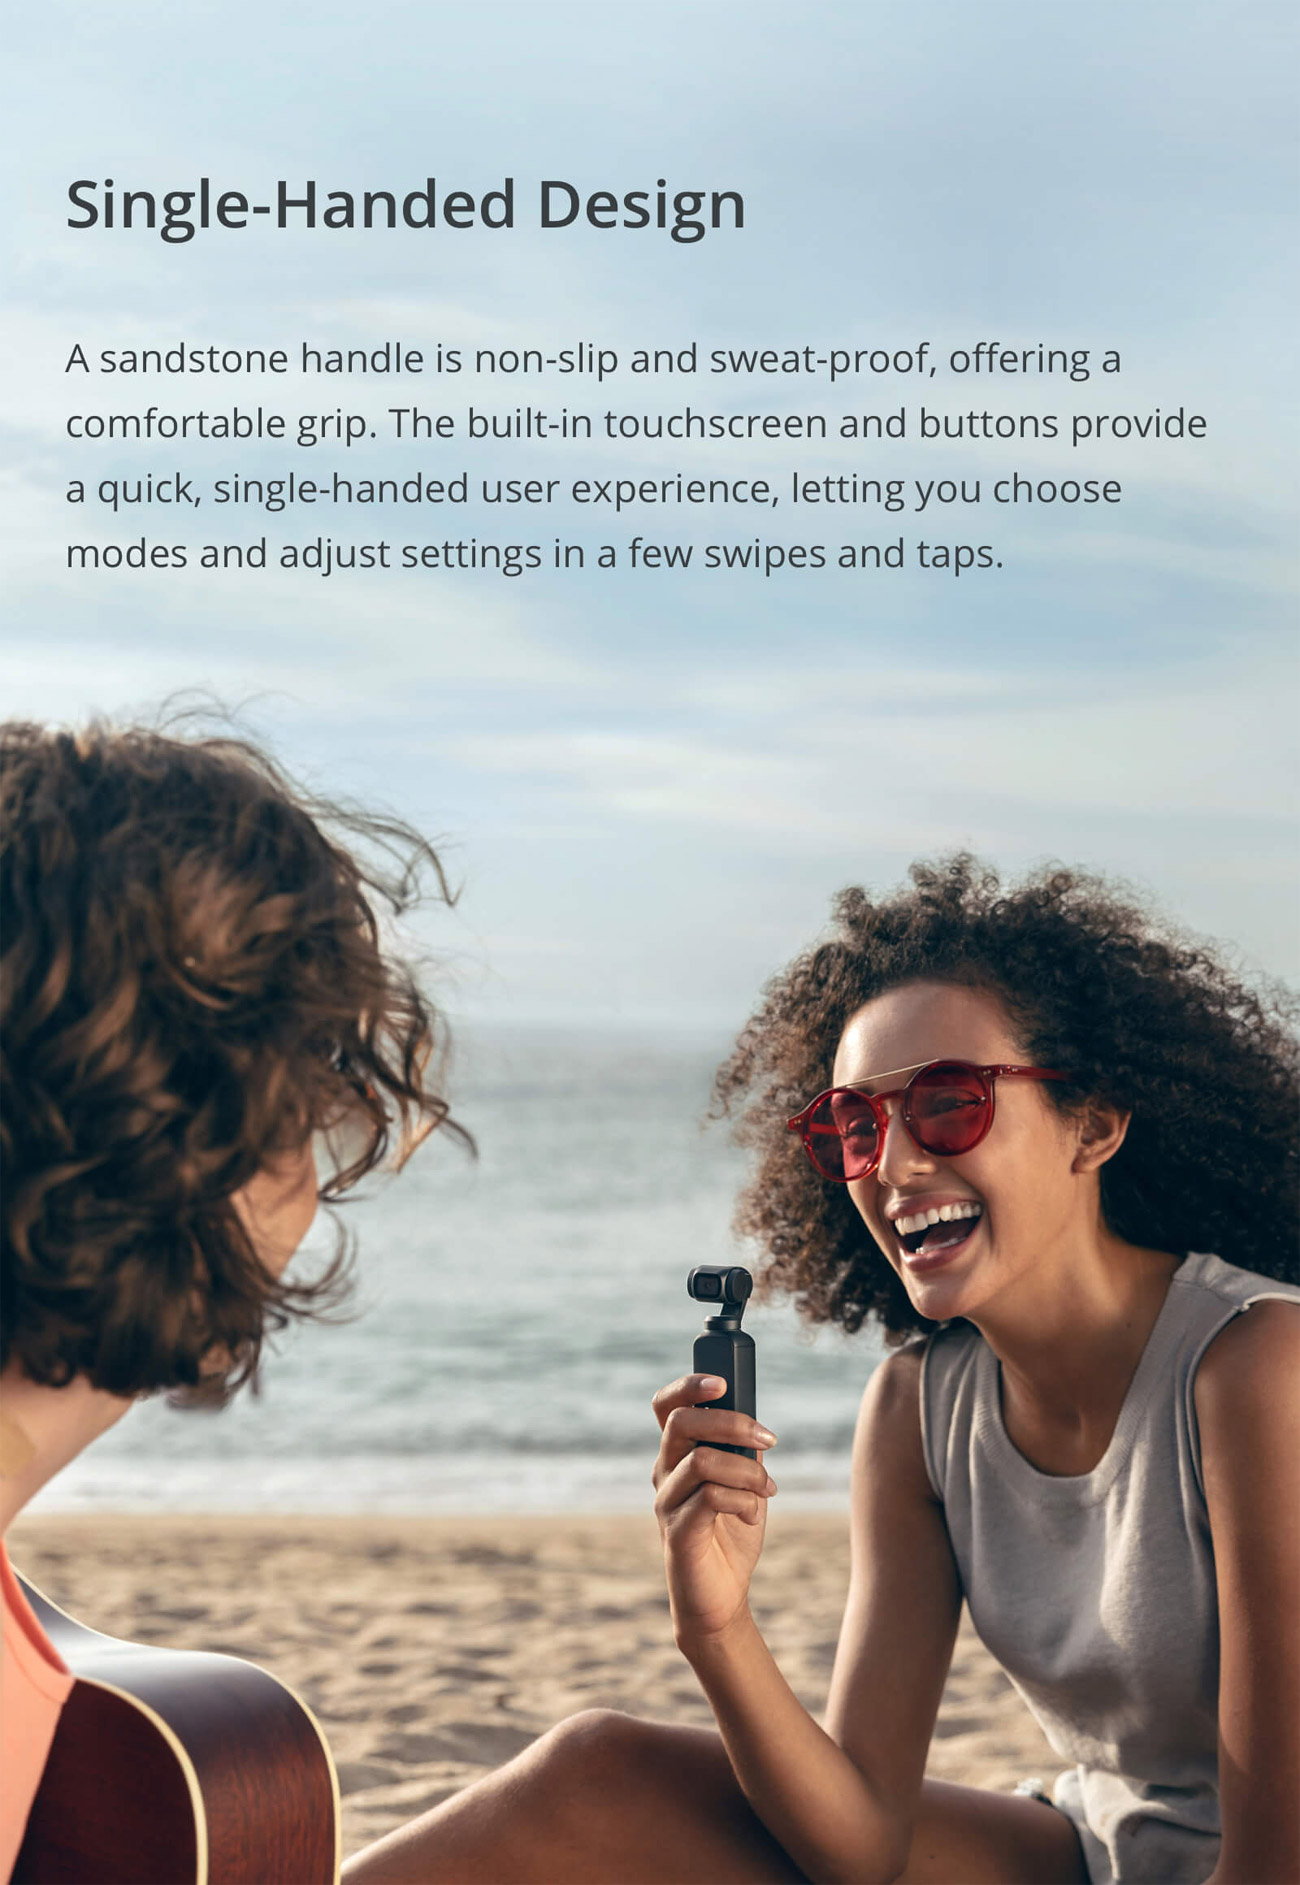 Osmo Pocket Banner showing two girls with one girl single-handedly filming the other. There is text that reads: Single-Handed Design. A sandstone handle is non-slip and sweat-proof, offering a comfortable grip. The built-in touchscreen and buttons provide a quick, single-handed user experience, letting you choose modes and adjust settings in a few swipes and taps.